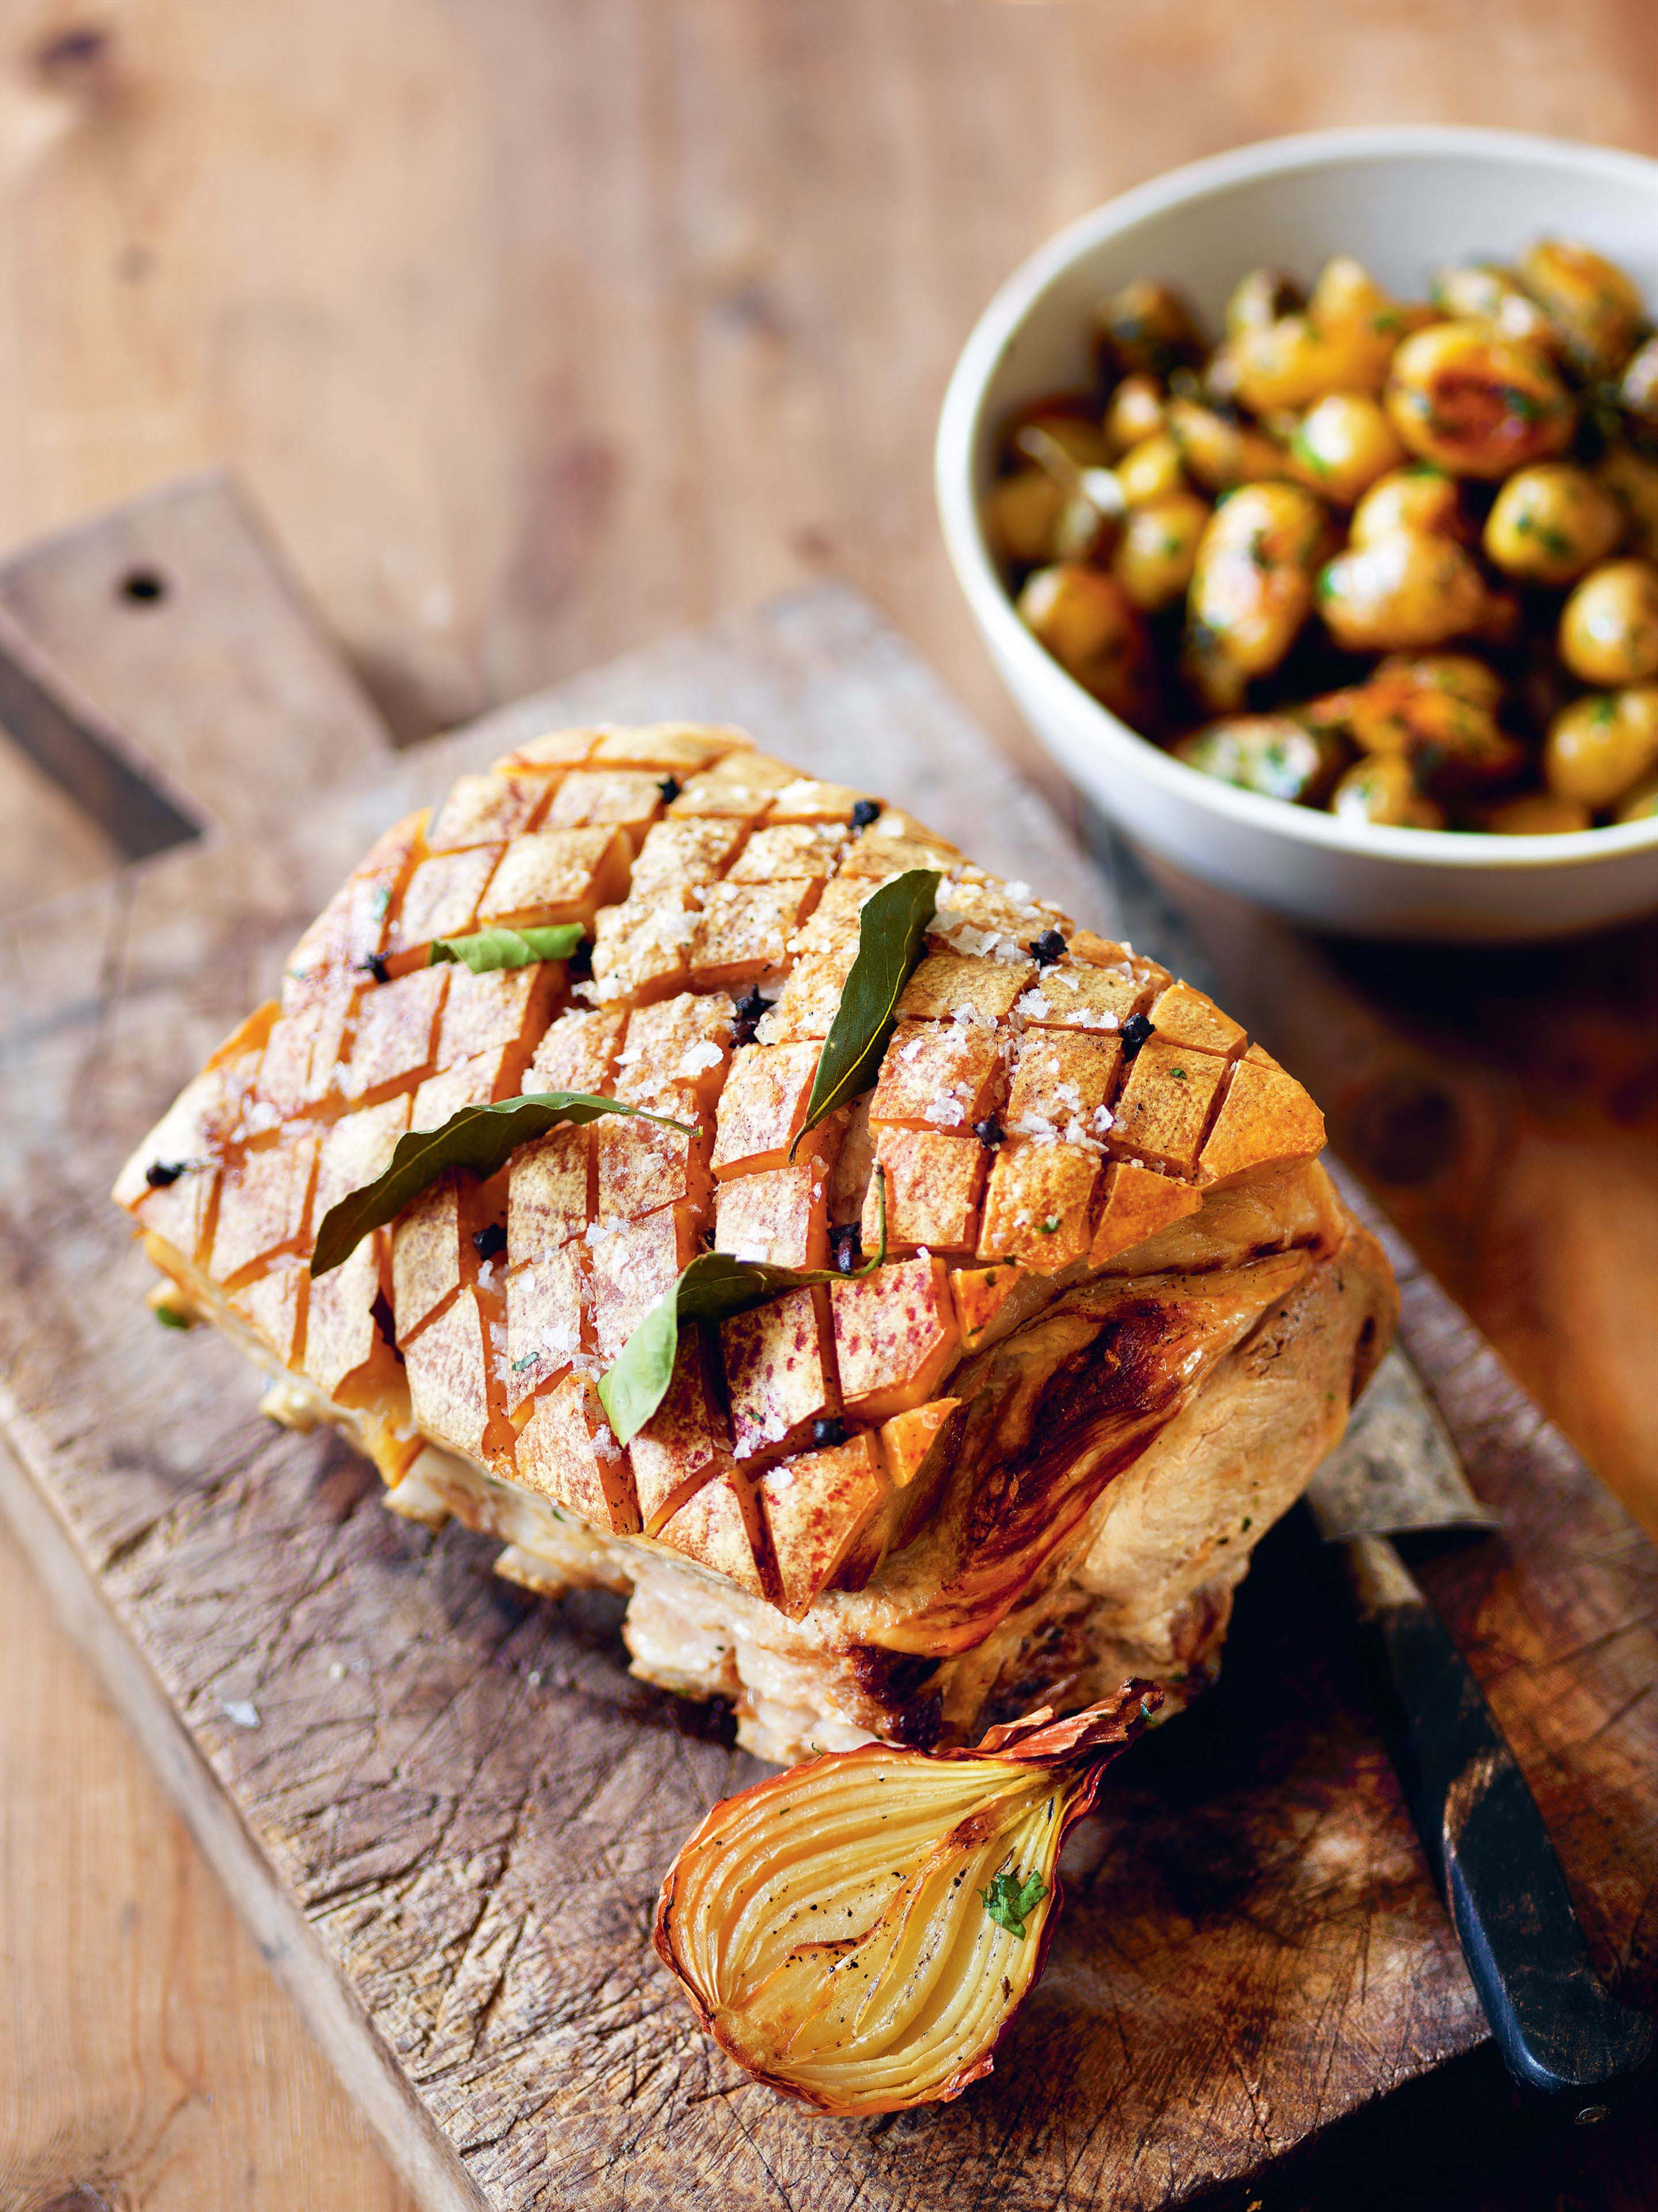 Roast pork with potatoes and apple relish